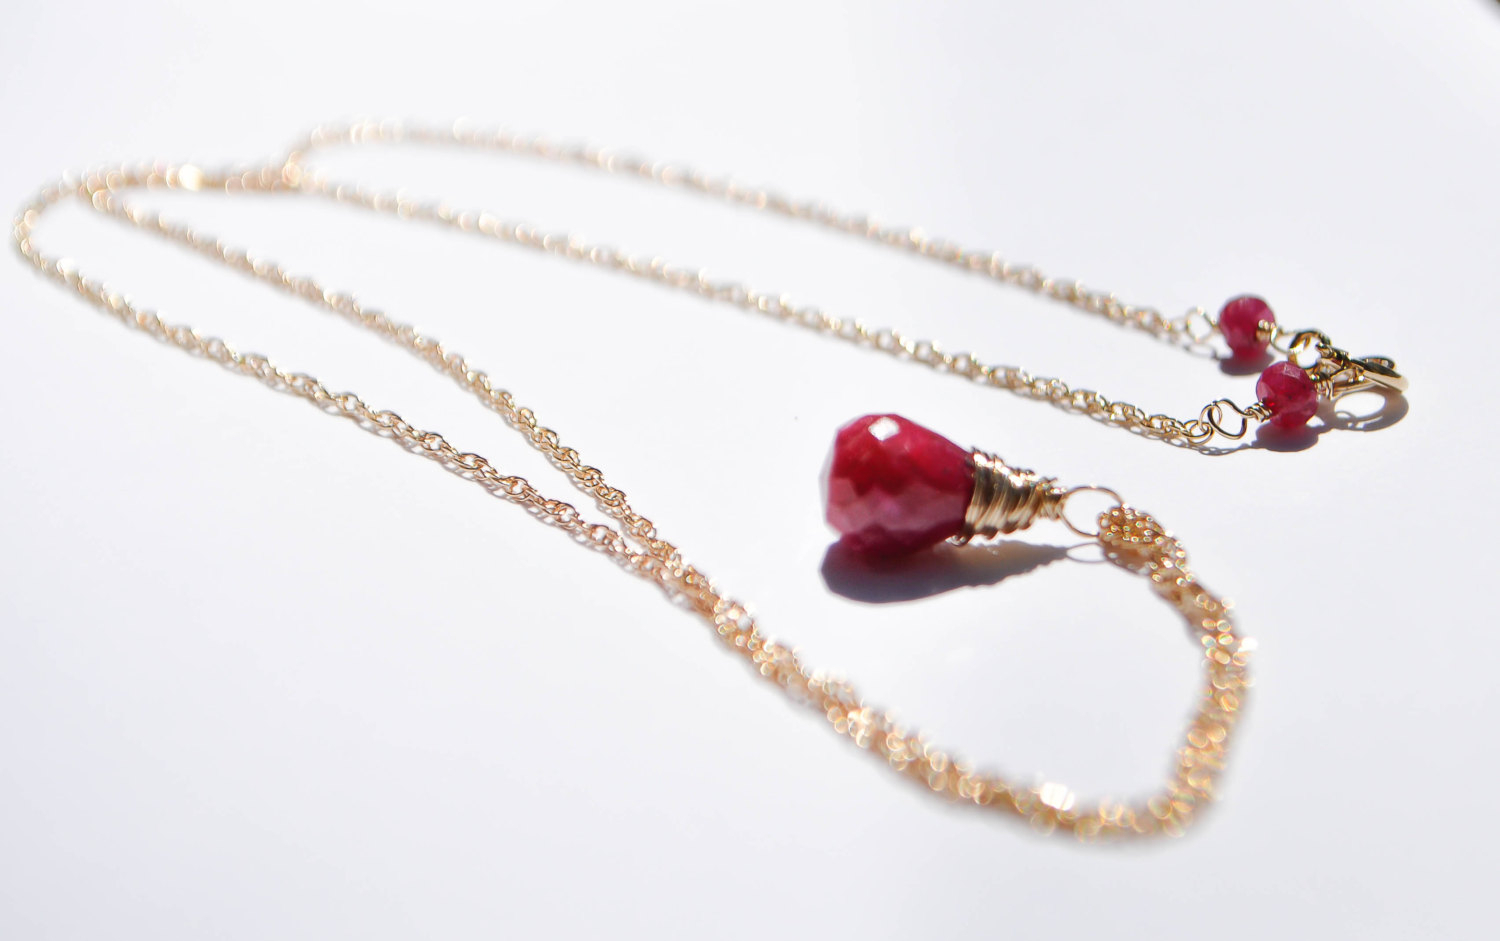 Bright Red Ruby Necklace, Genuine Ruby Pendant Necklace, 14K Gold Filled,  July Birthstone Necklace, For Her, Minimalist Necklace Intended For Most Recent Red July Birthstone Locket Element Necklaces (View 3 of 25)